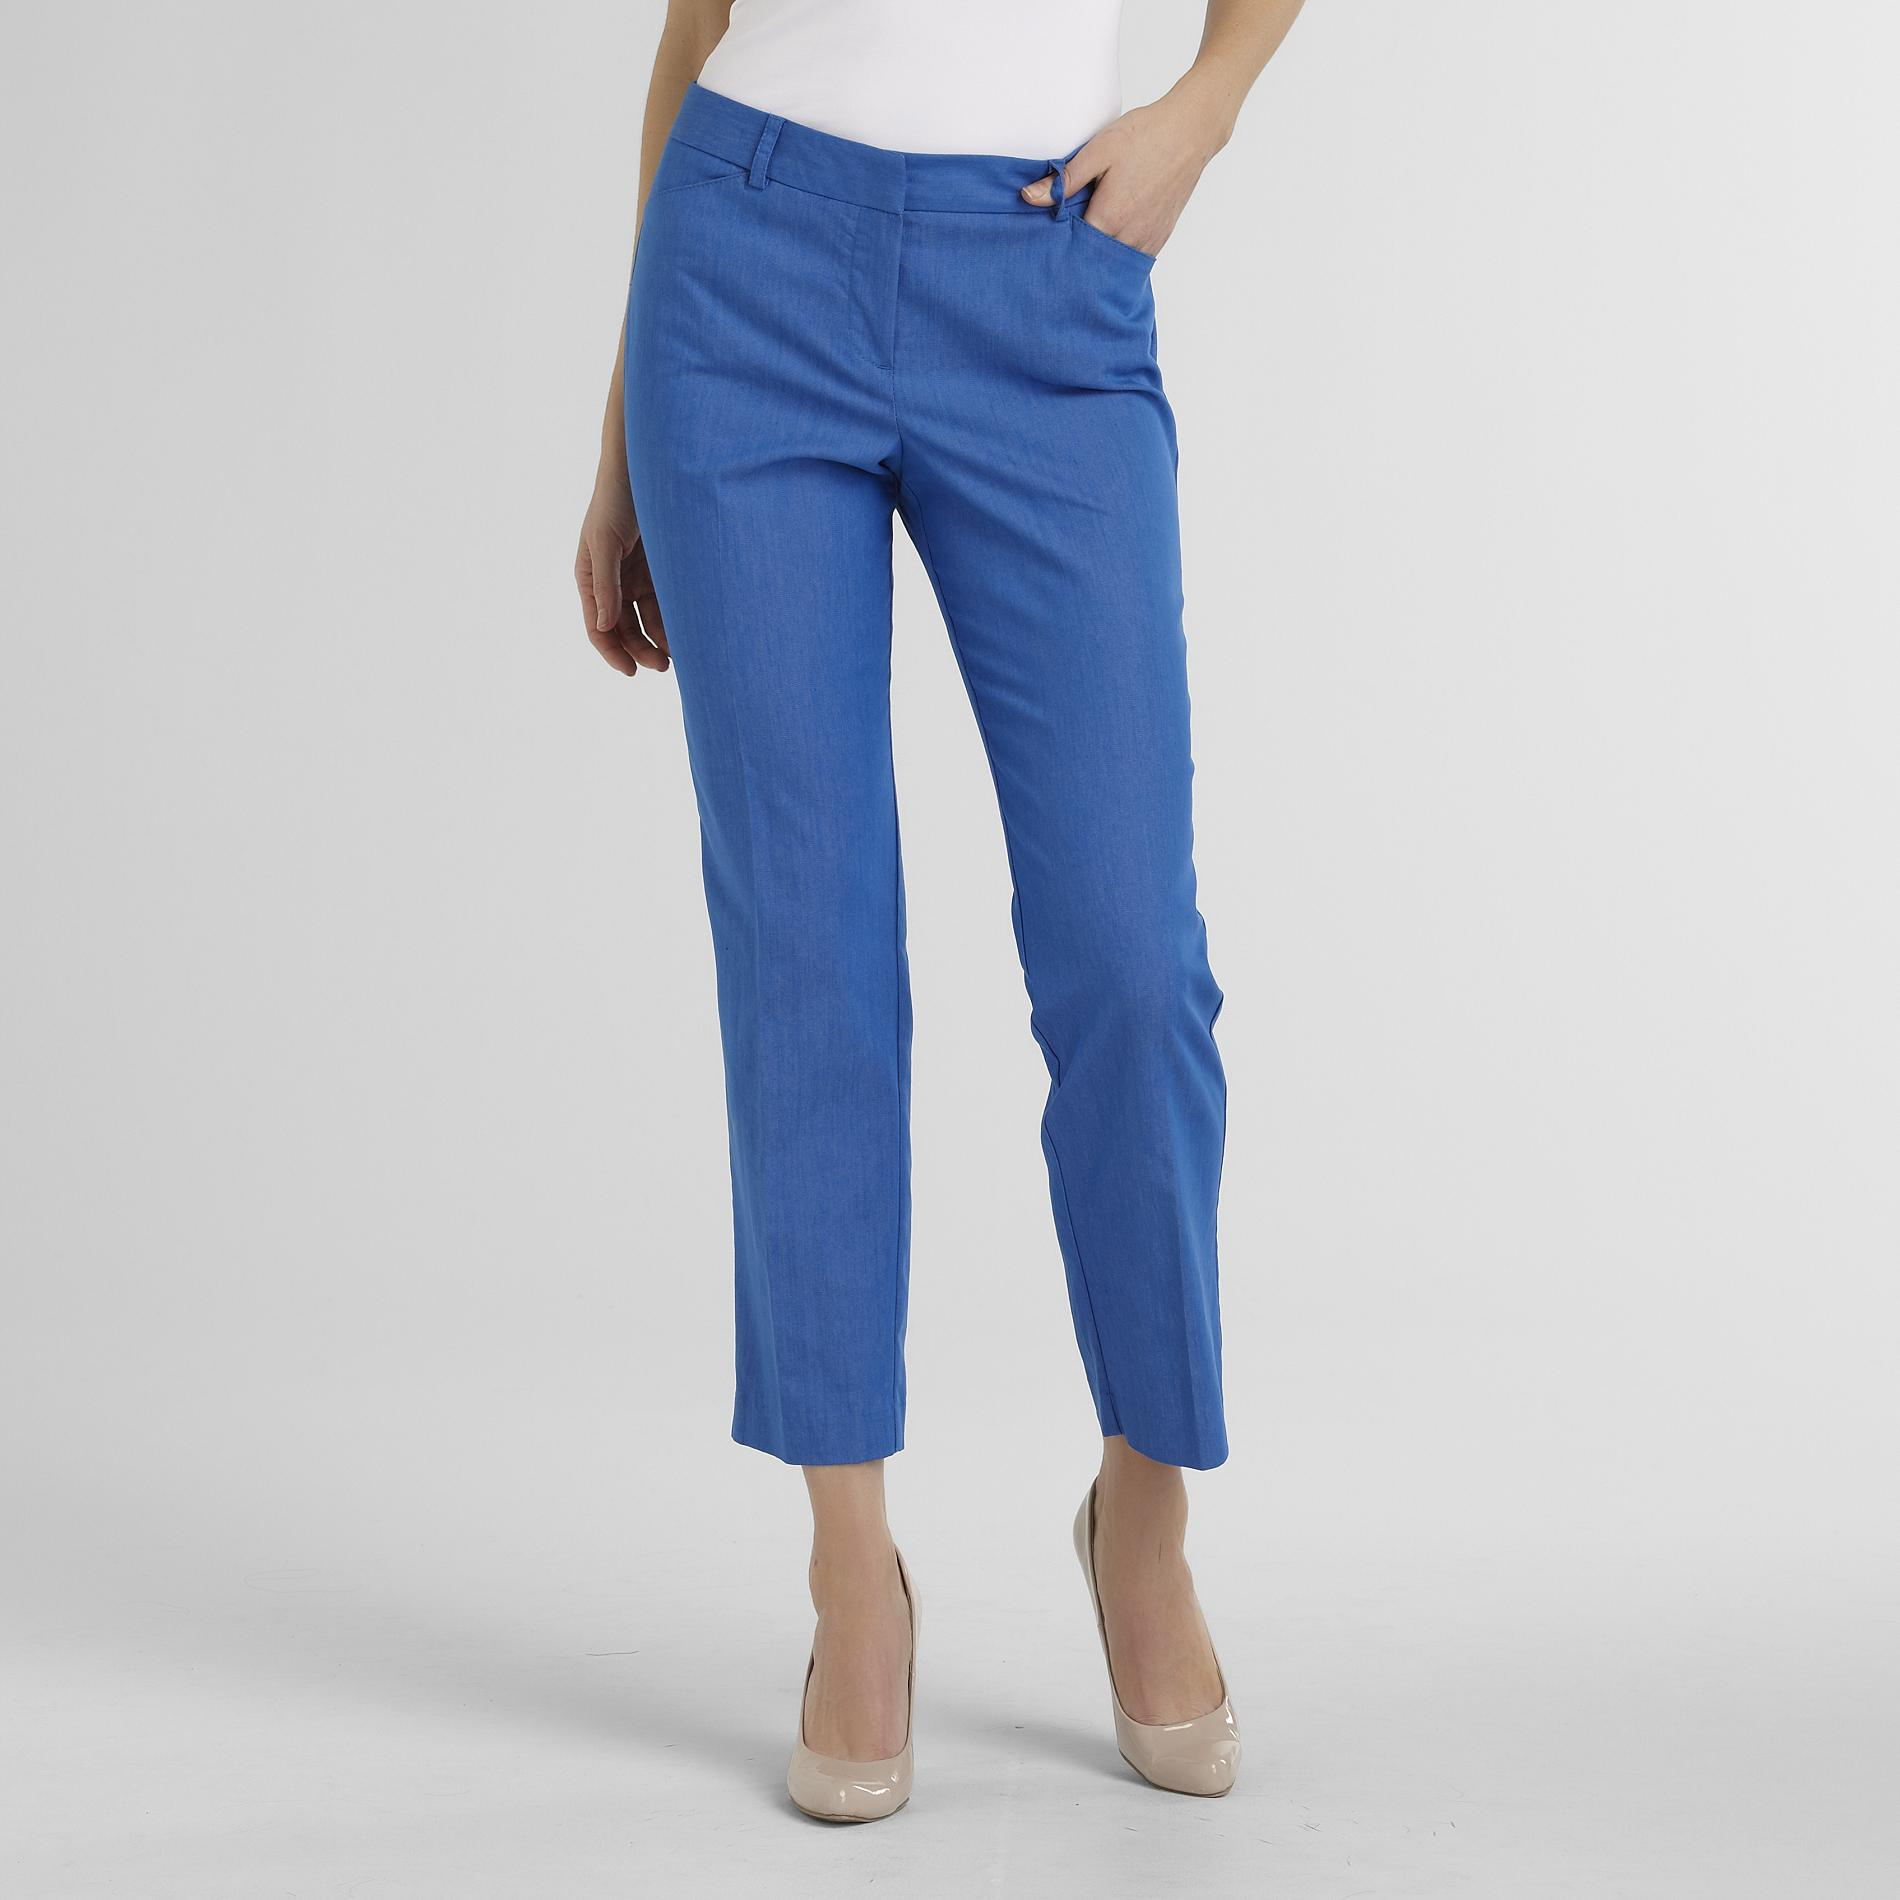 Covington Women's Colored Ankle Pants at Sears.com